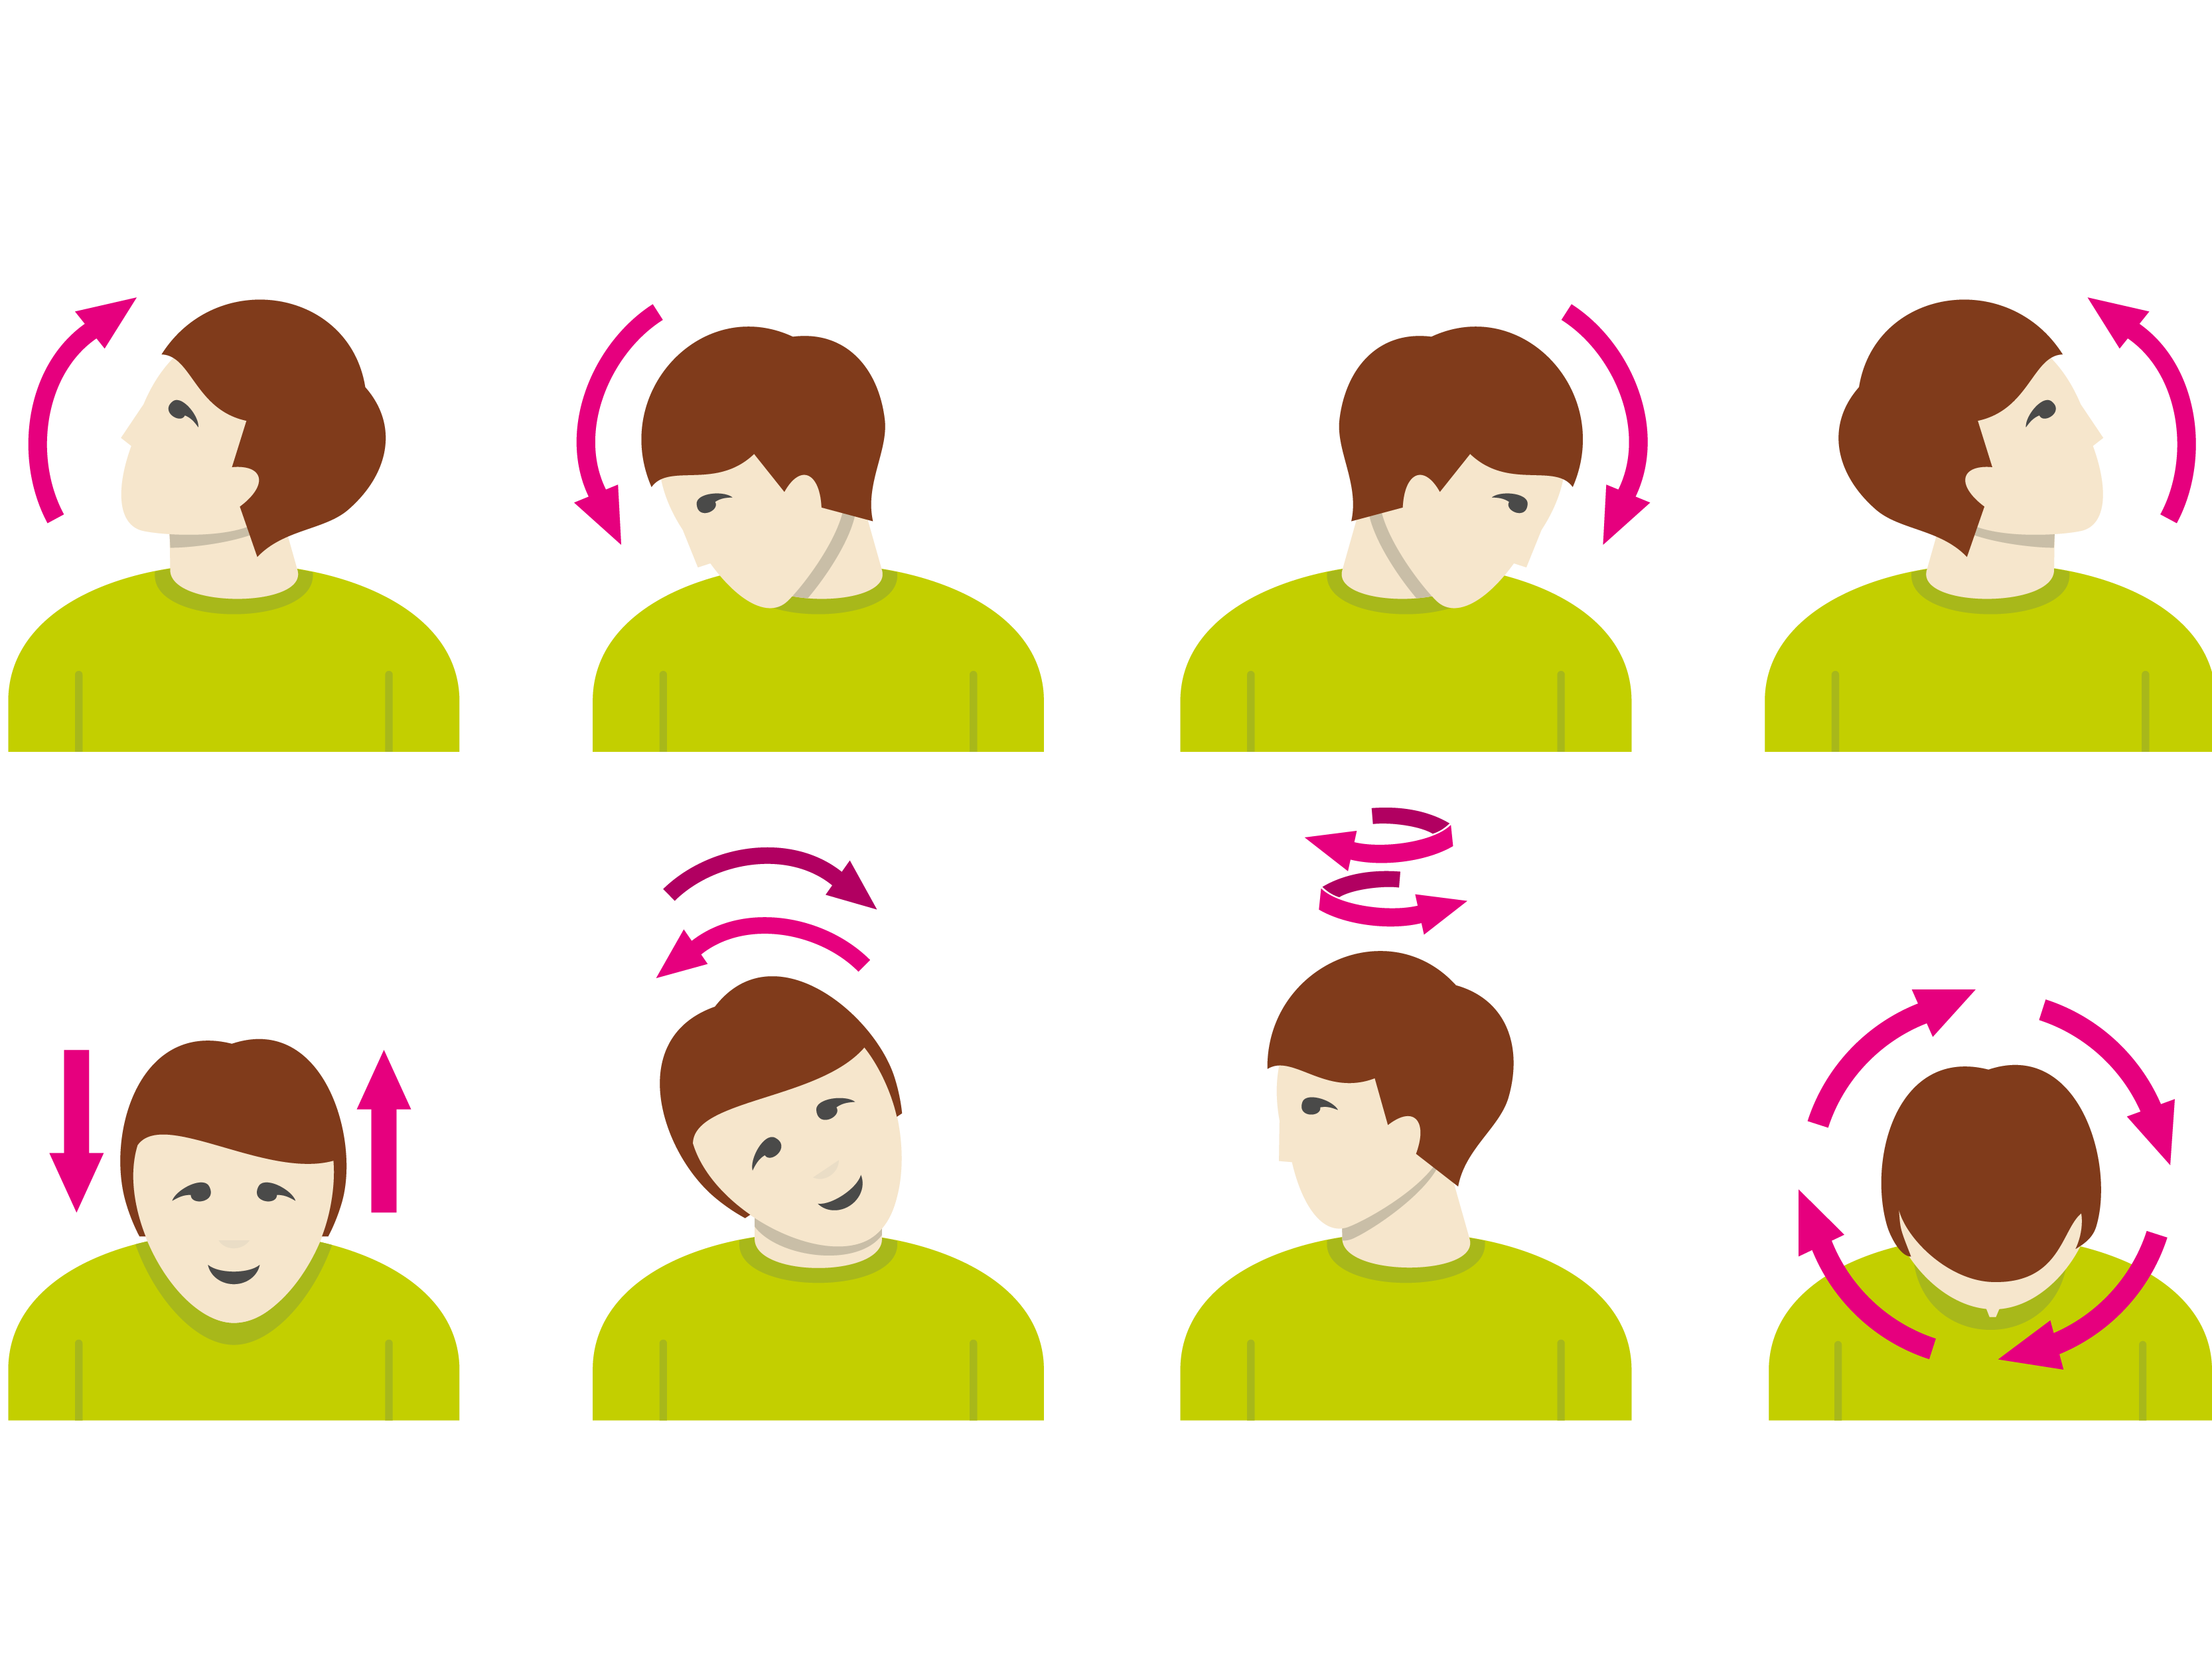 Exercise clipart light exercise. Physical neck stretching nuchal